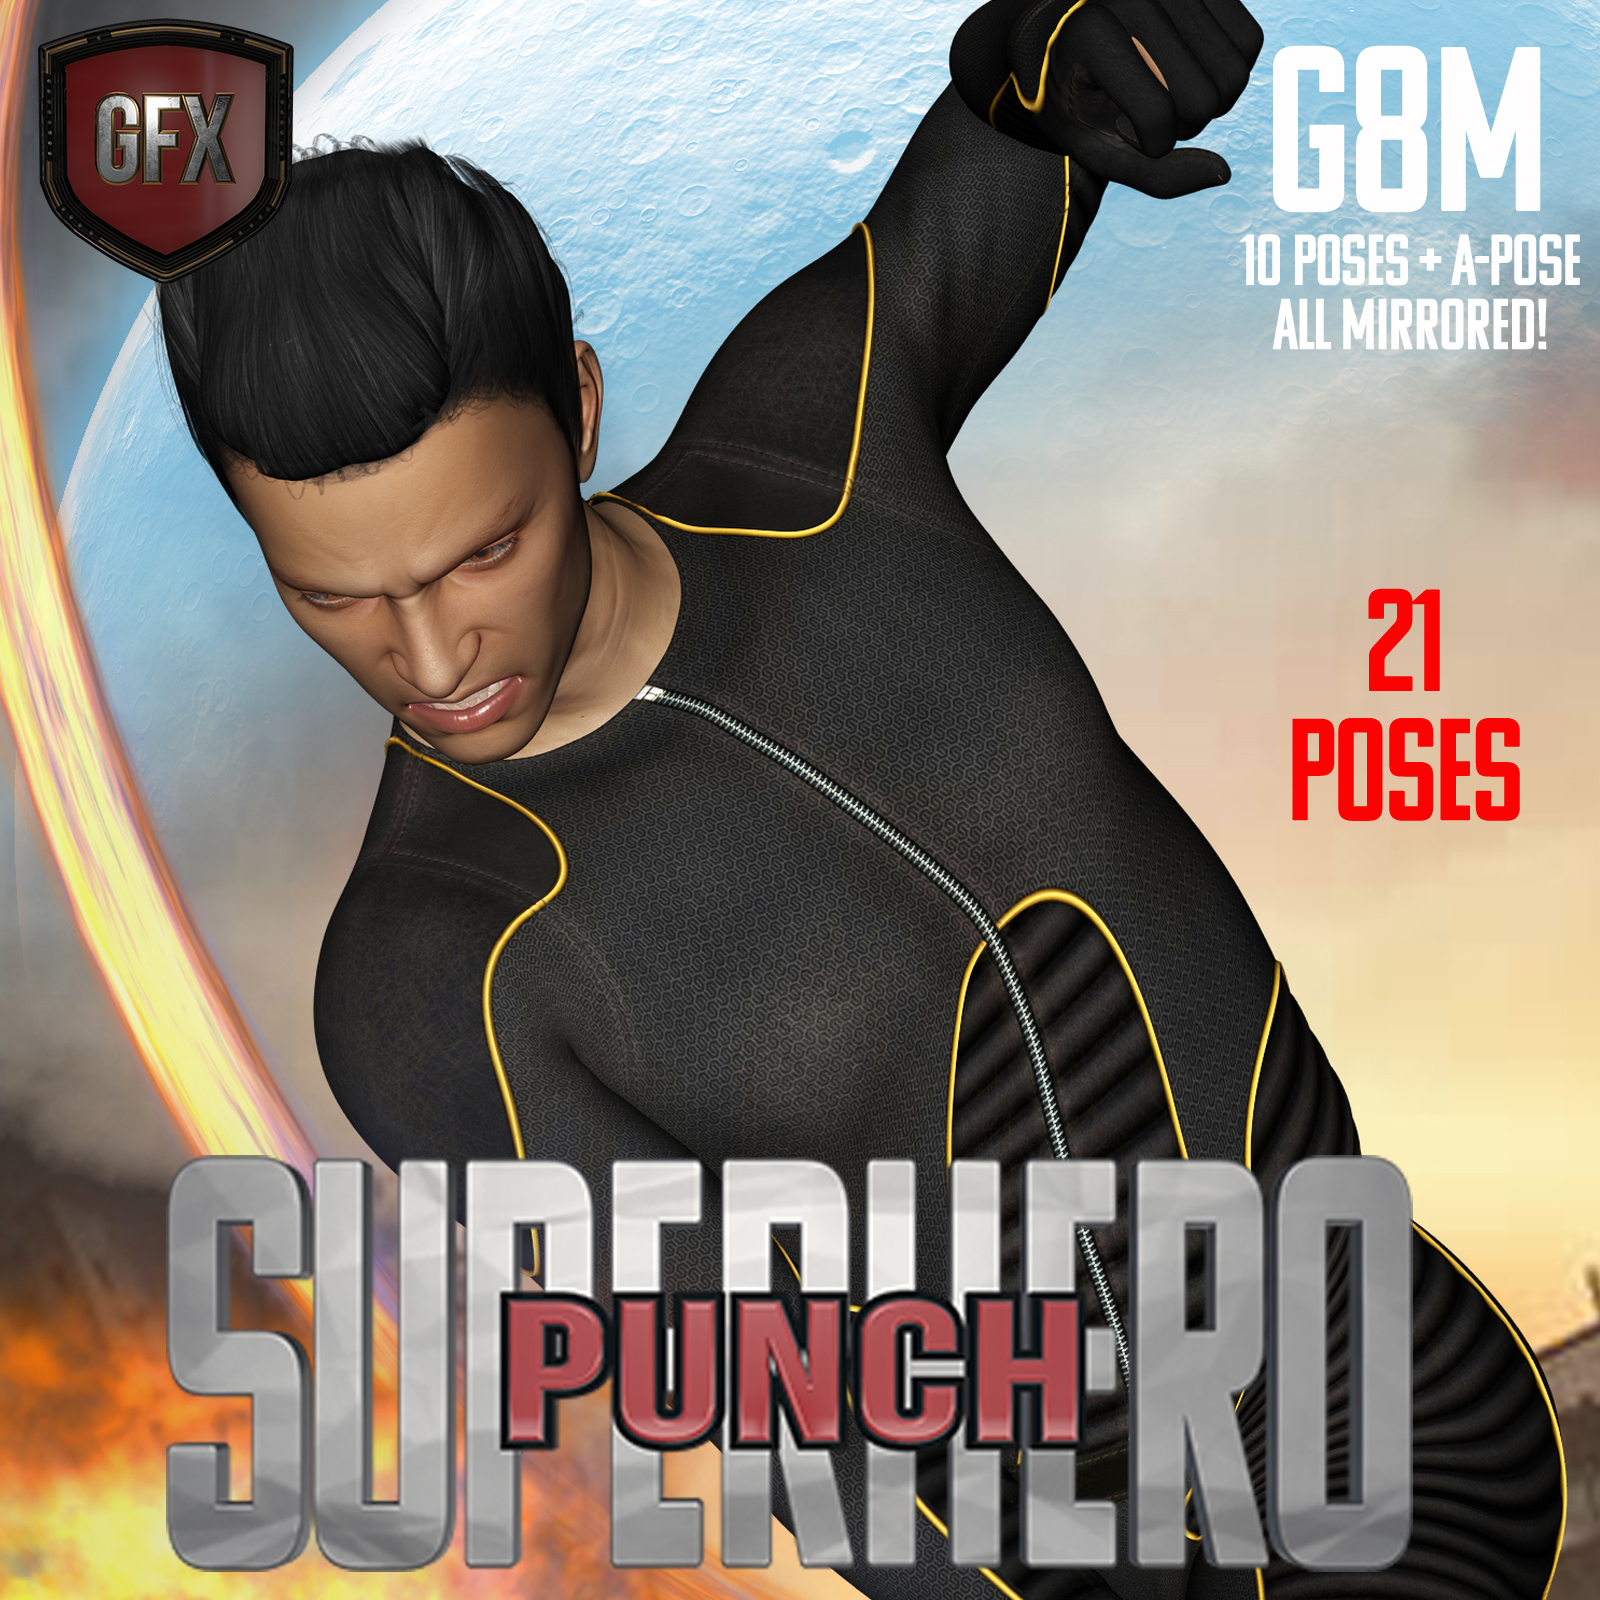 SuperHero Punch for G8M Volume 1 by GriffinFX